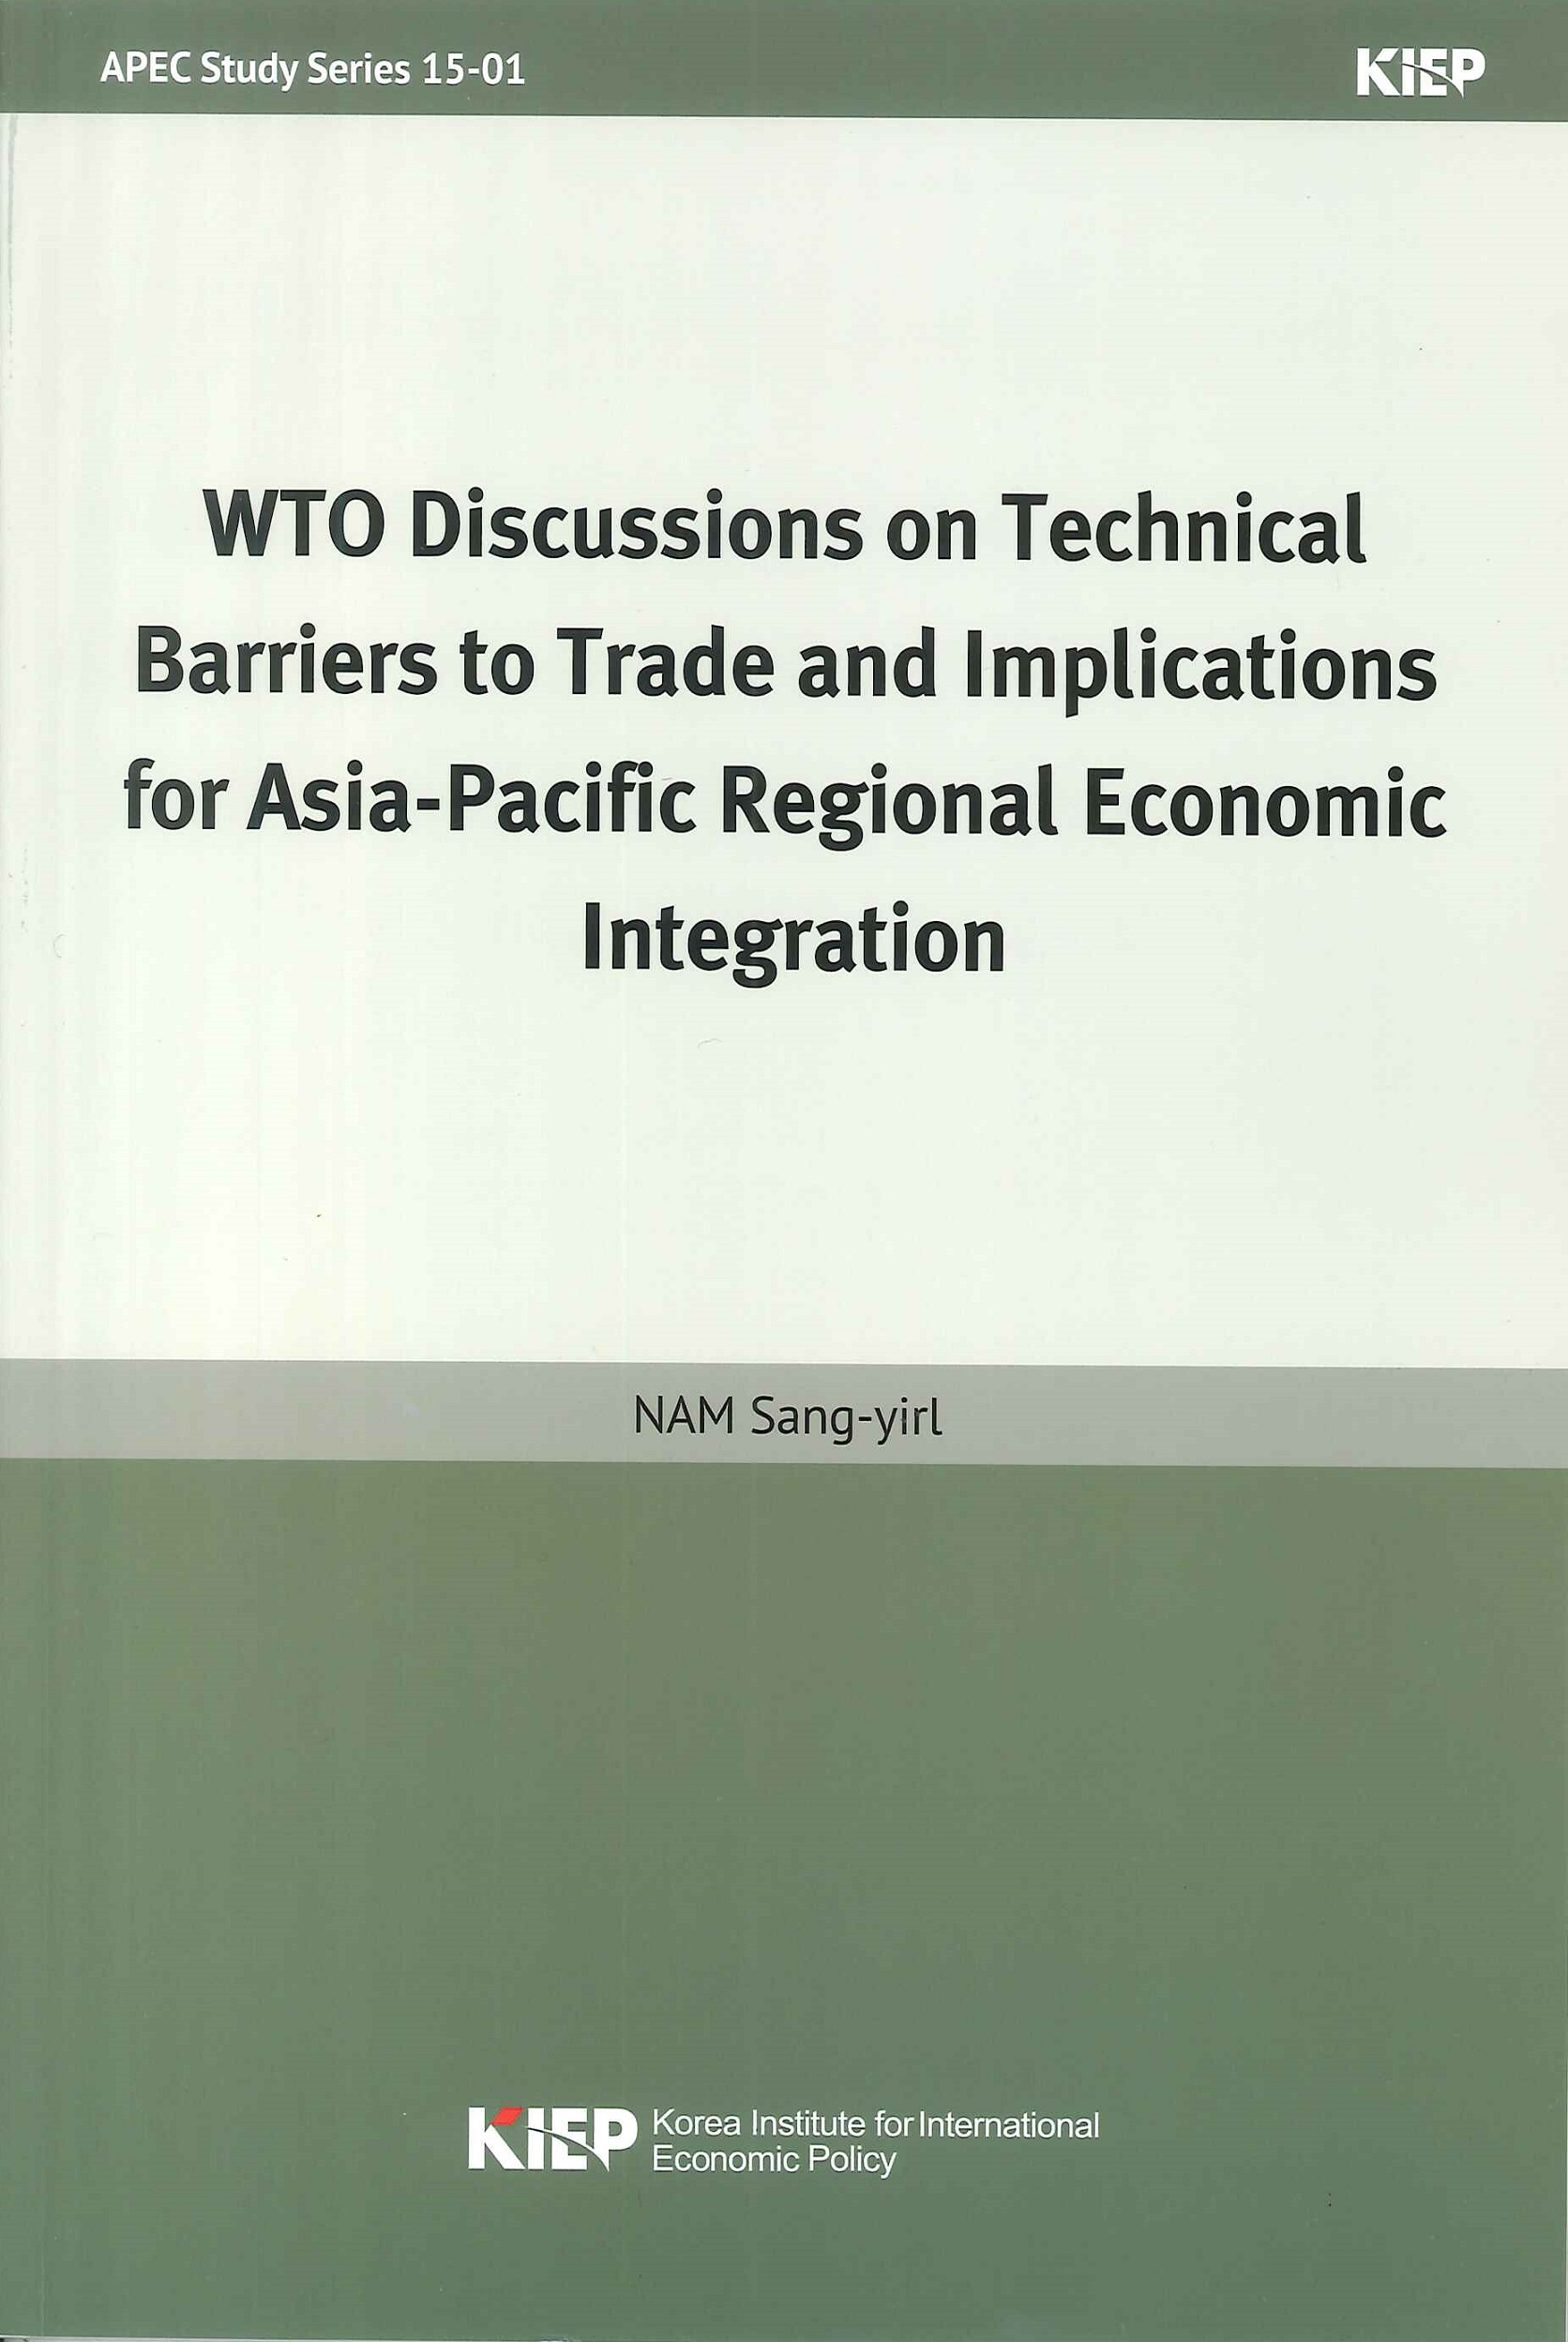 WTO discussions on technical barries to trade and implications for Asia-Pacific Regional economic integration